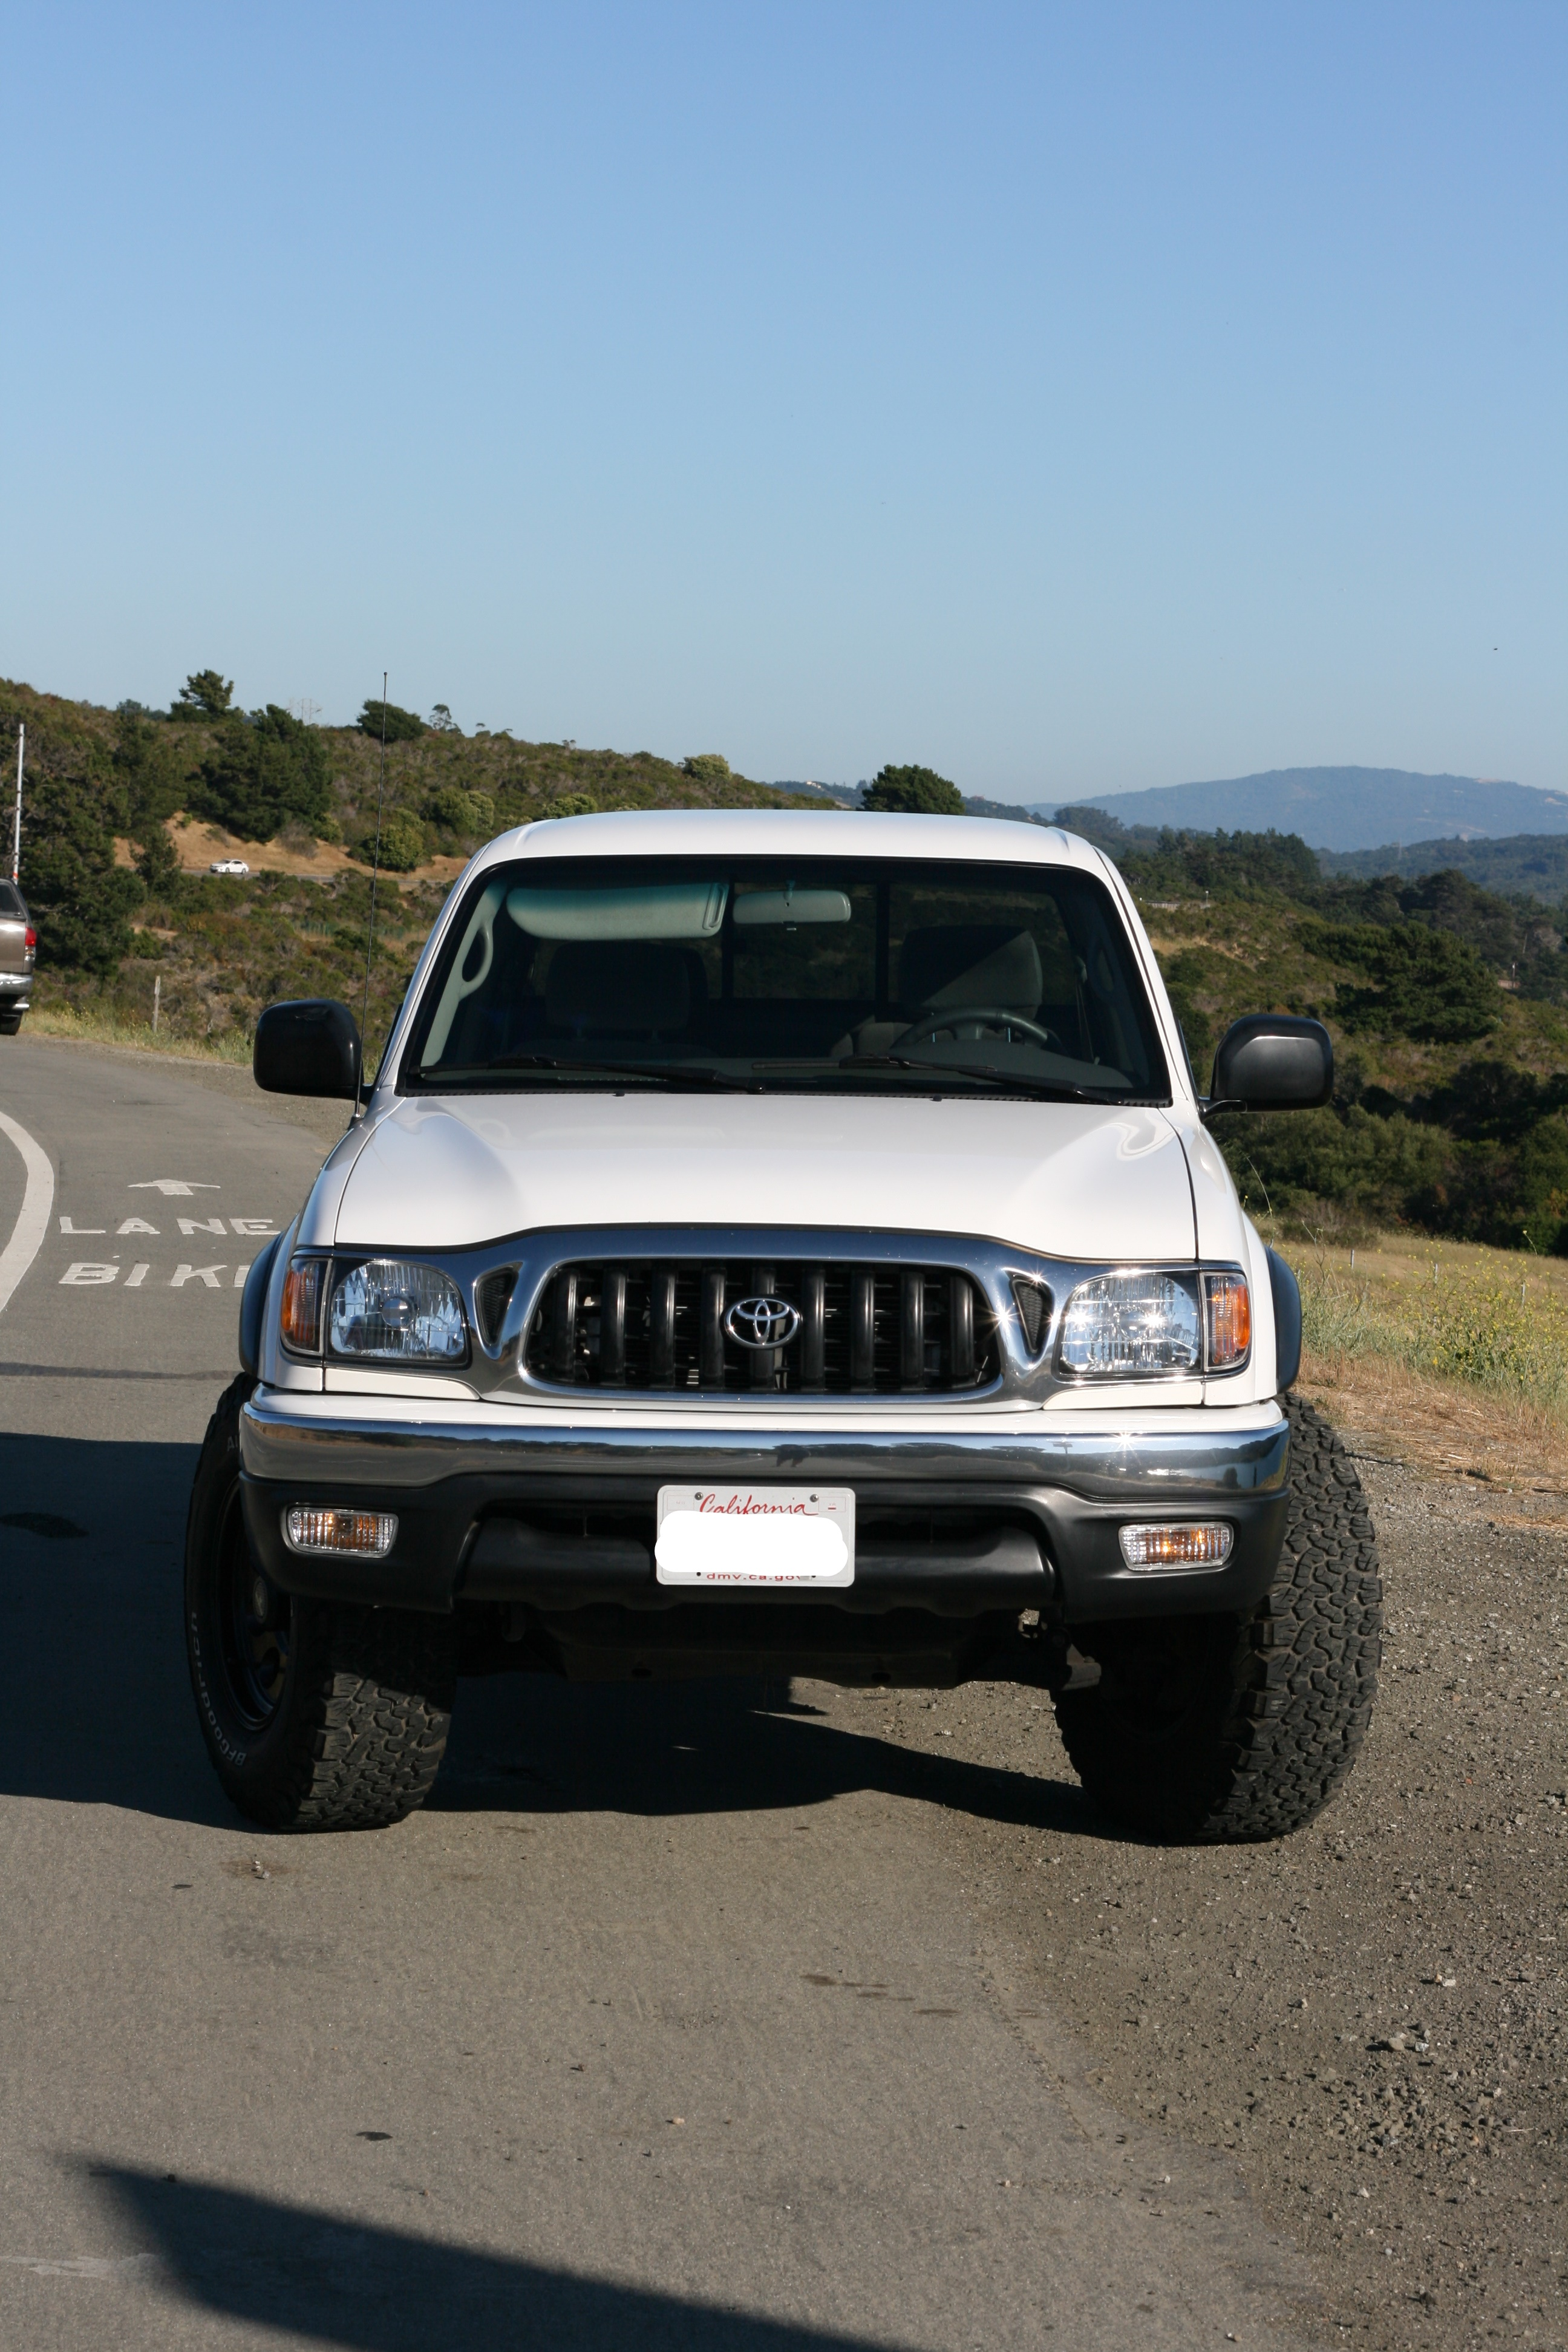 Used 2004 Toyota Tacoma For Sale in San Mateo, CA